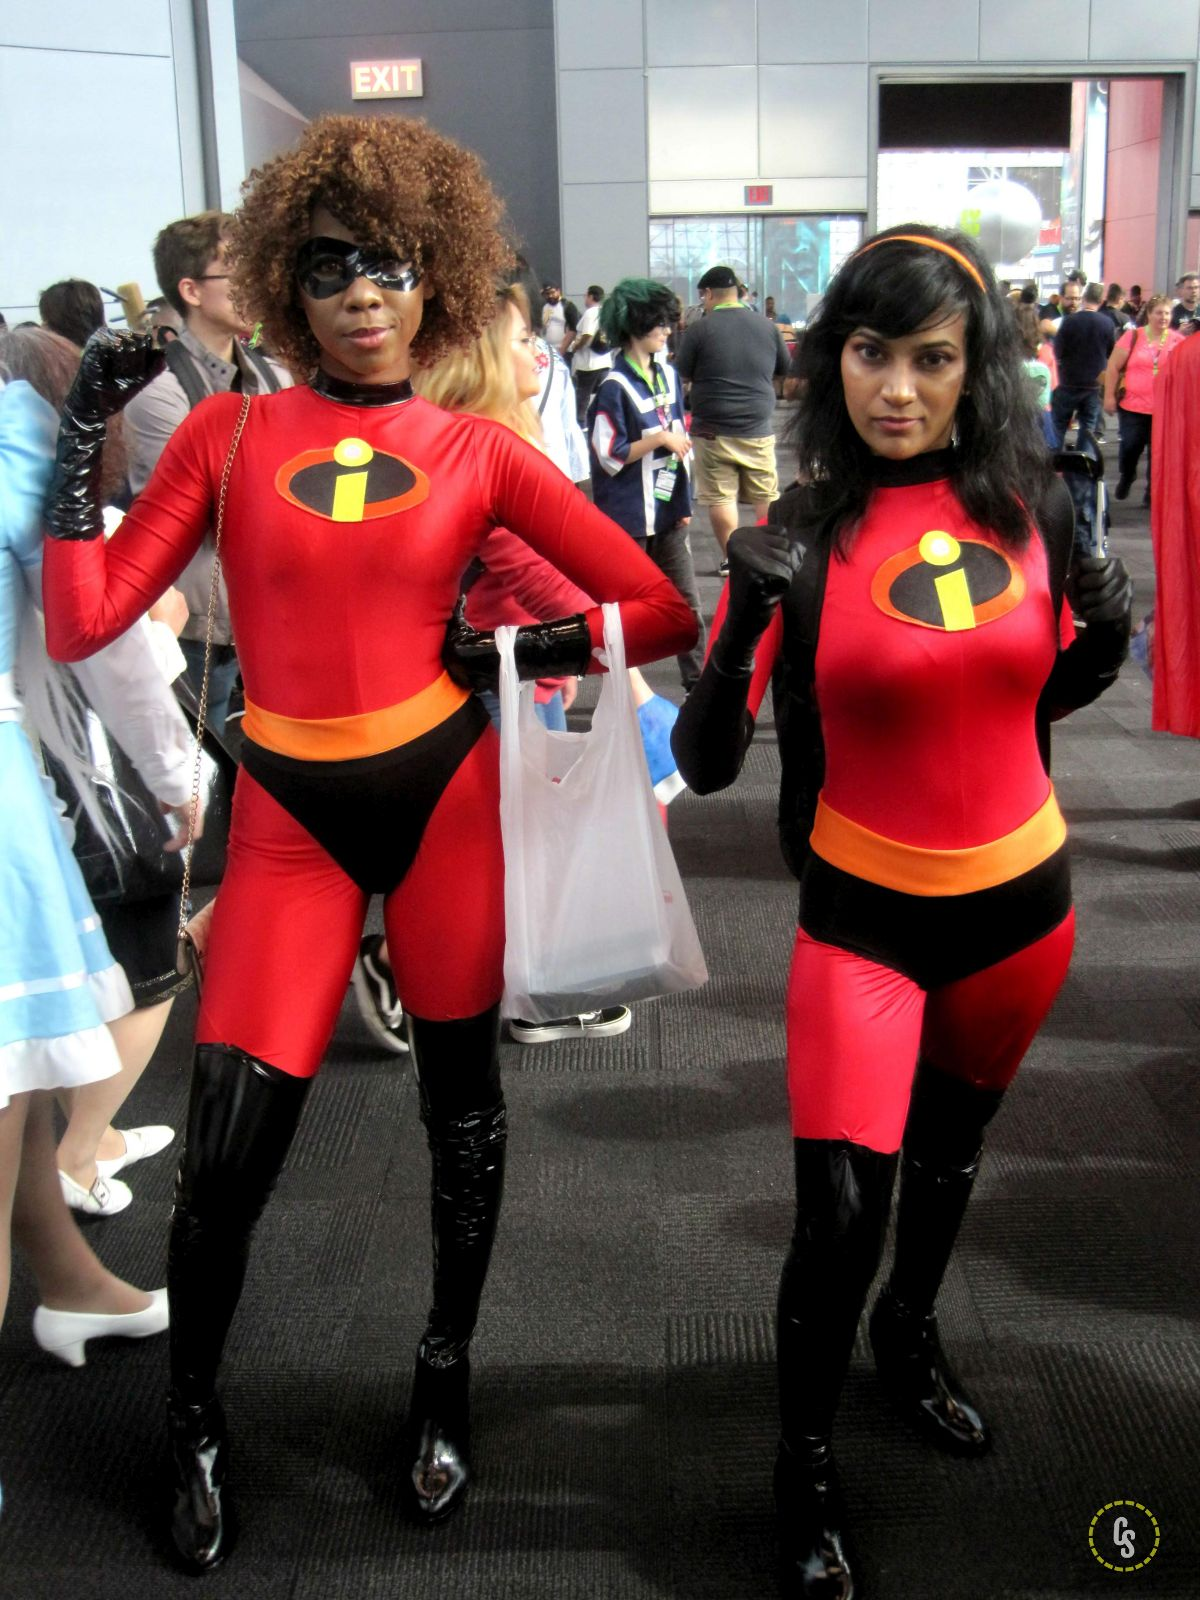 nycc183_097